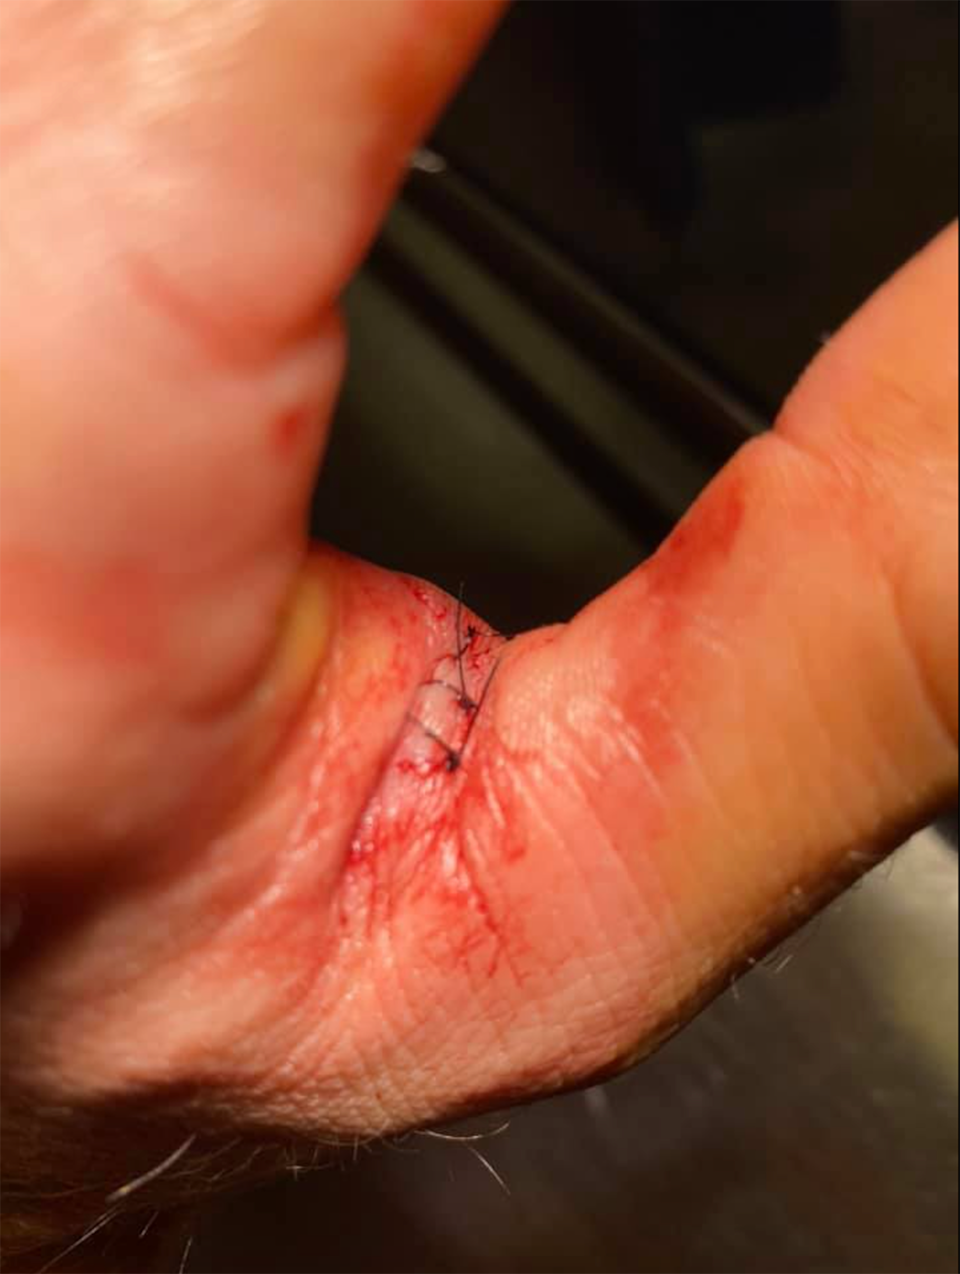 Stitches in the webbing of Dylan's hand.